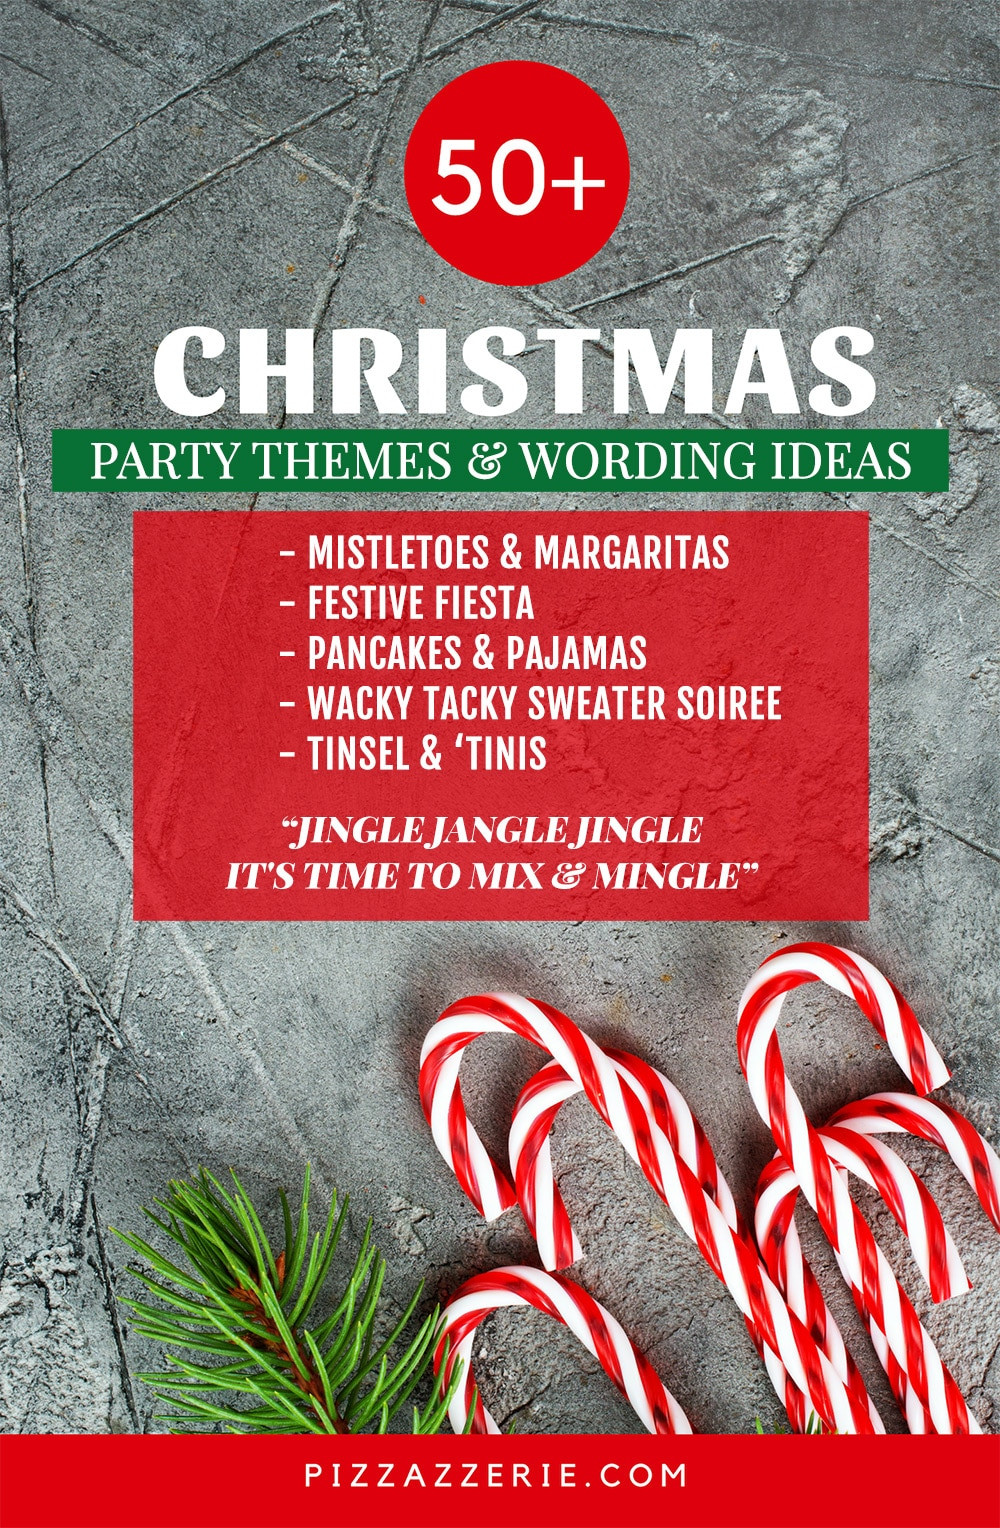 Christmas Party Name Ideas  50 CHRISTMAS PARTY THEMES & CLEVER INVITATION WORDING